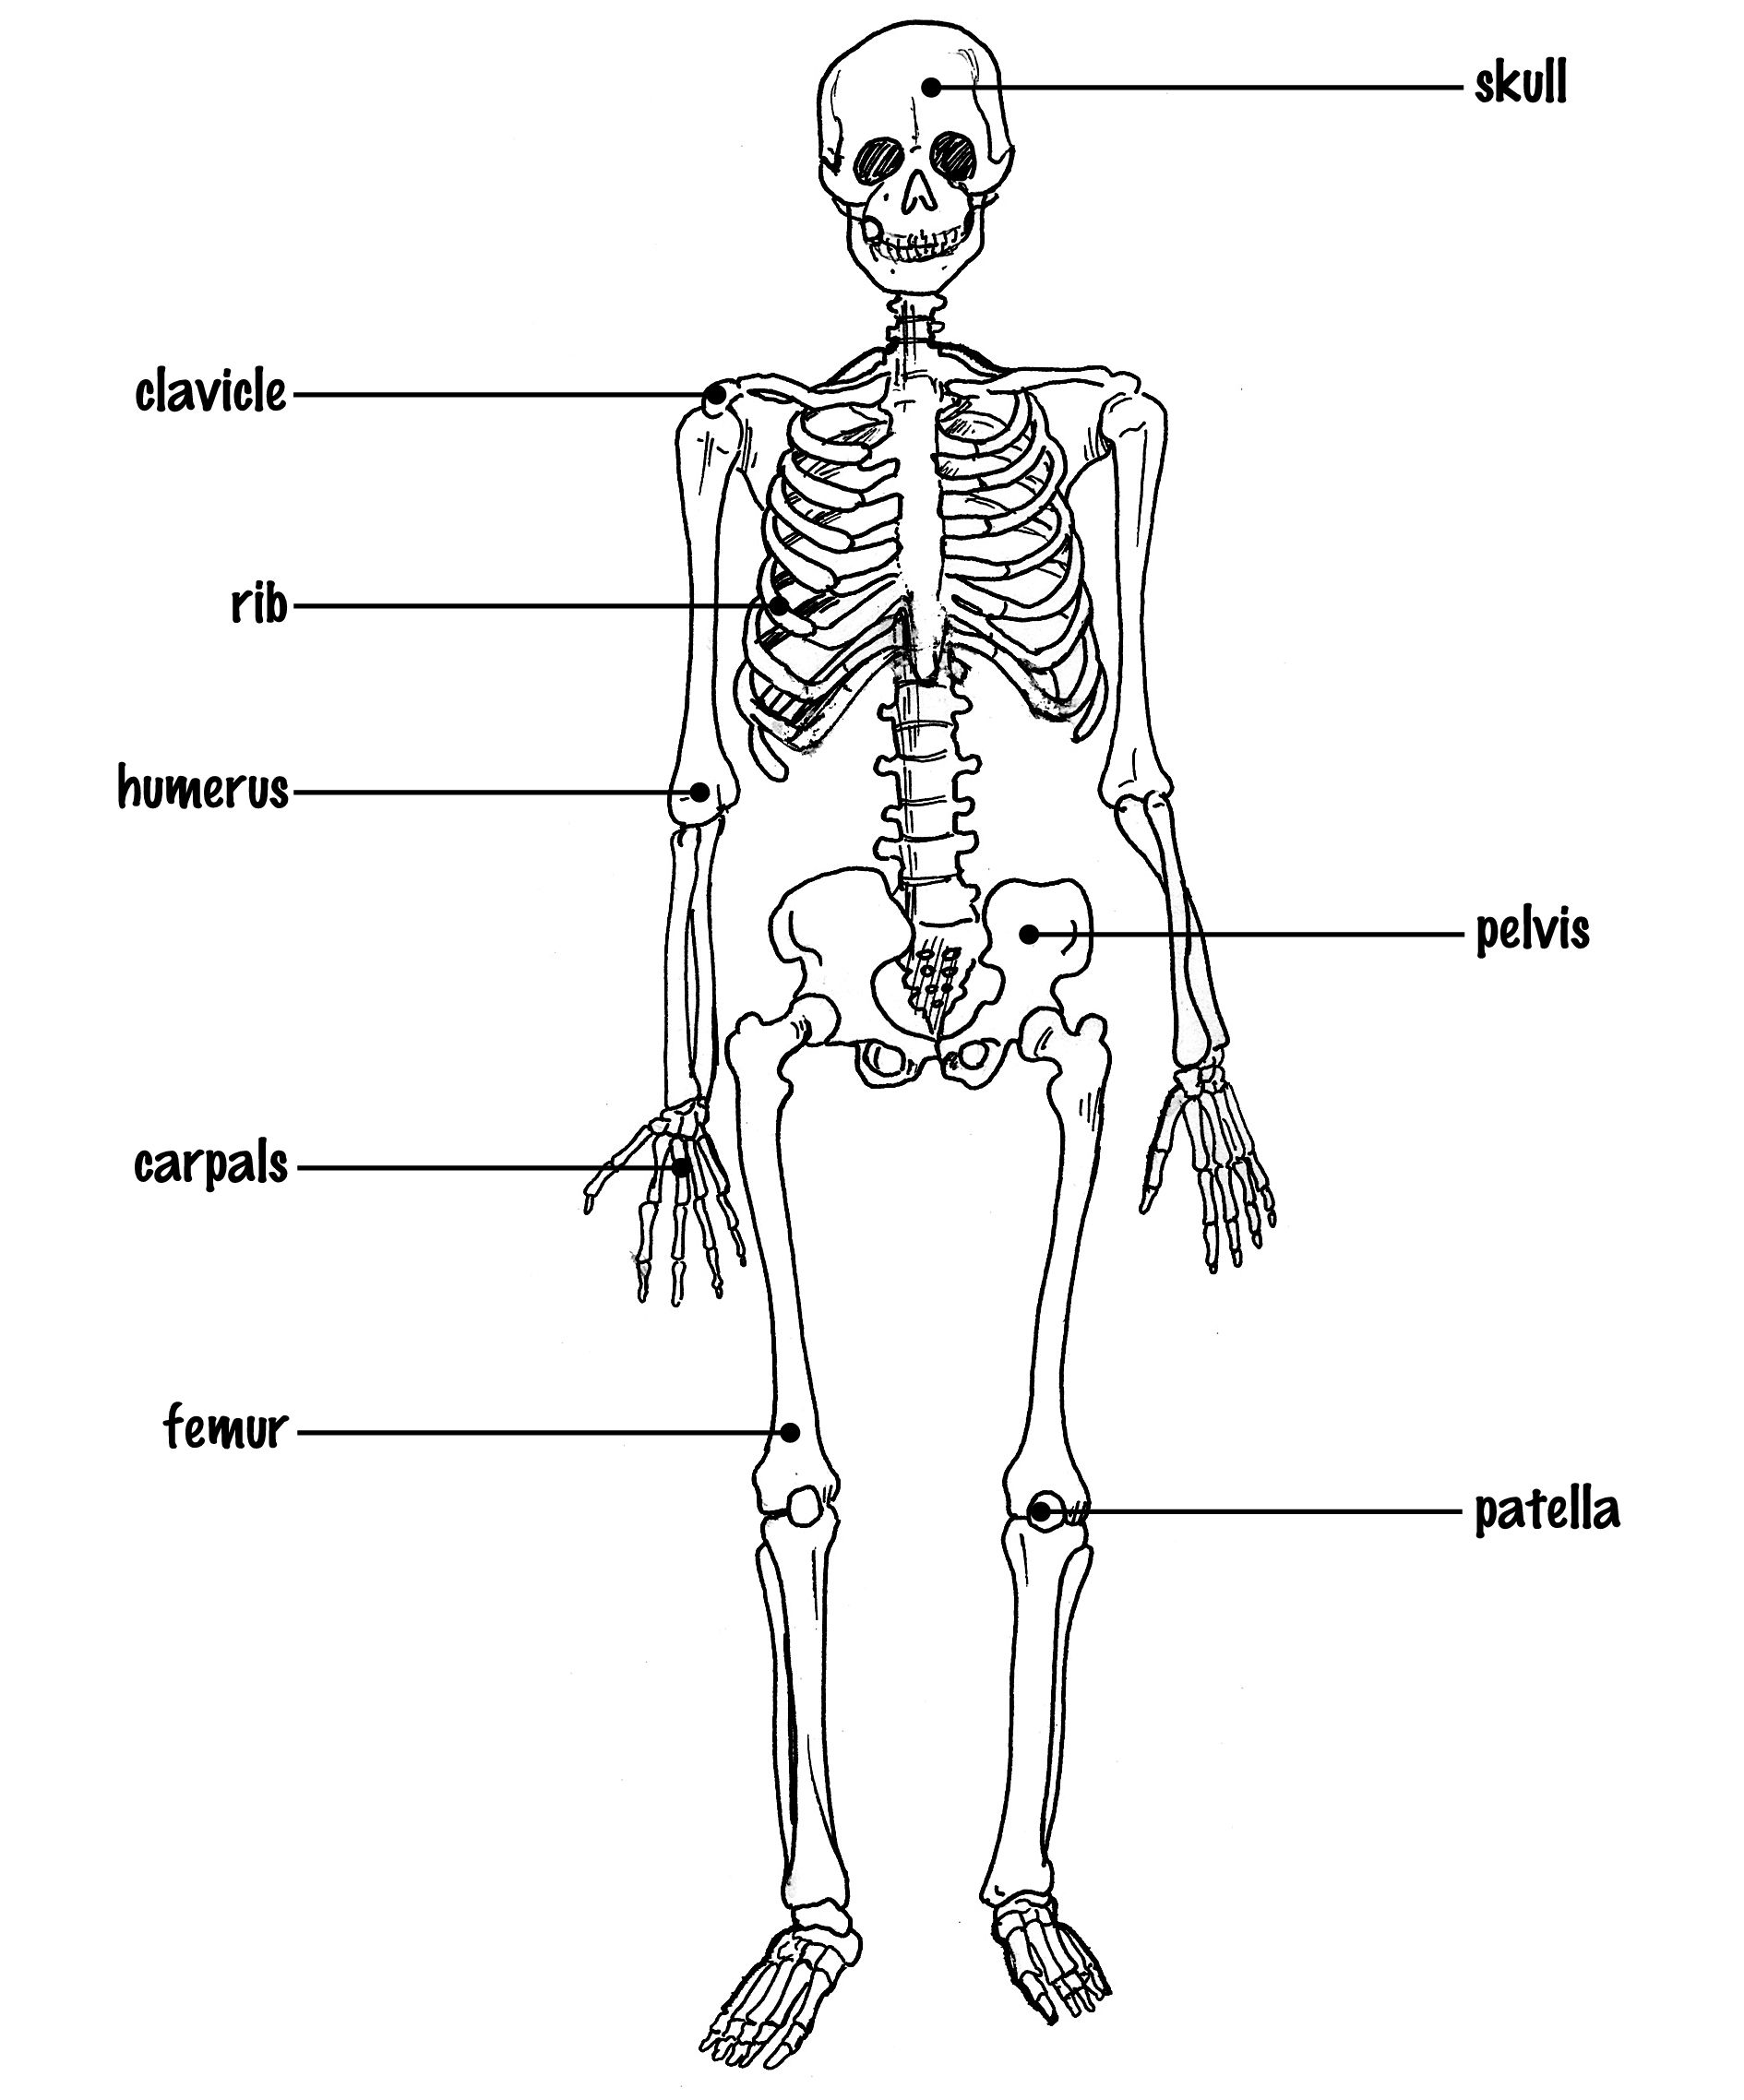 The Skeletal System Diagram Labeled  The Skeletal System Diagram Labeled Simple Skeletal System